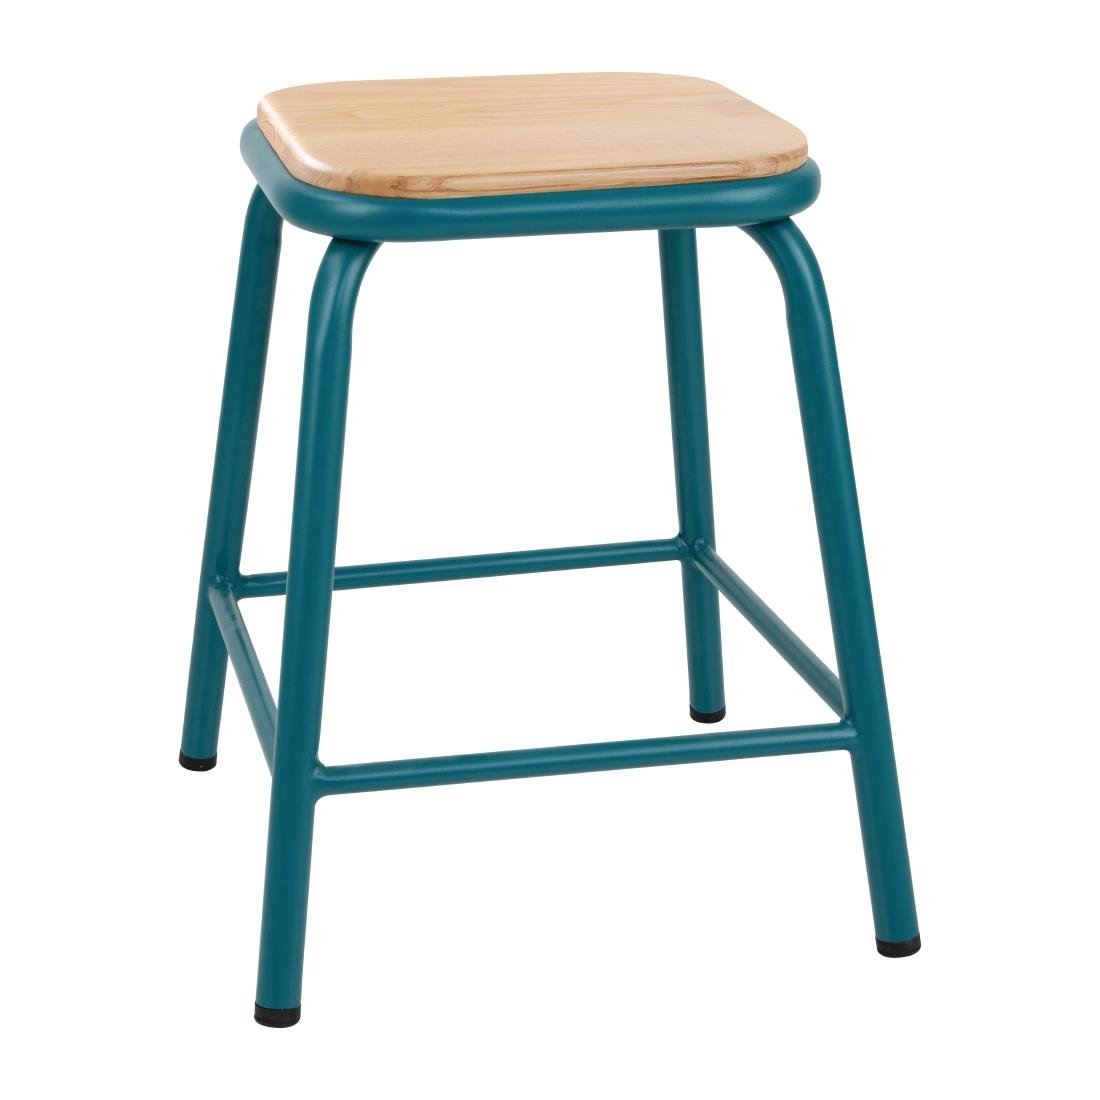 Image of Bolero Cantina Low Stools with Wooden Seat Pad Teal (Pack of 4) Pack of 4